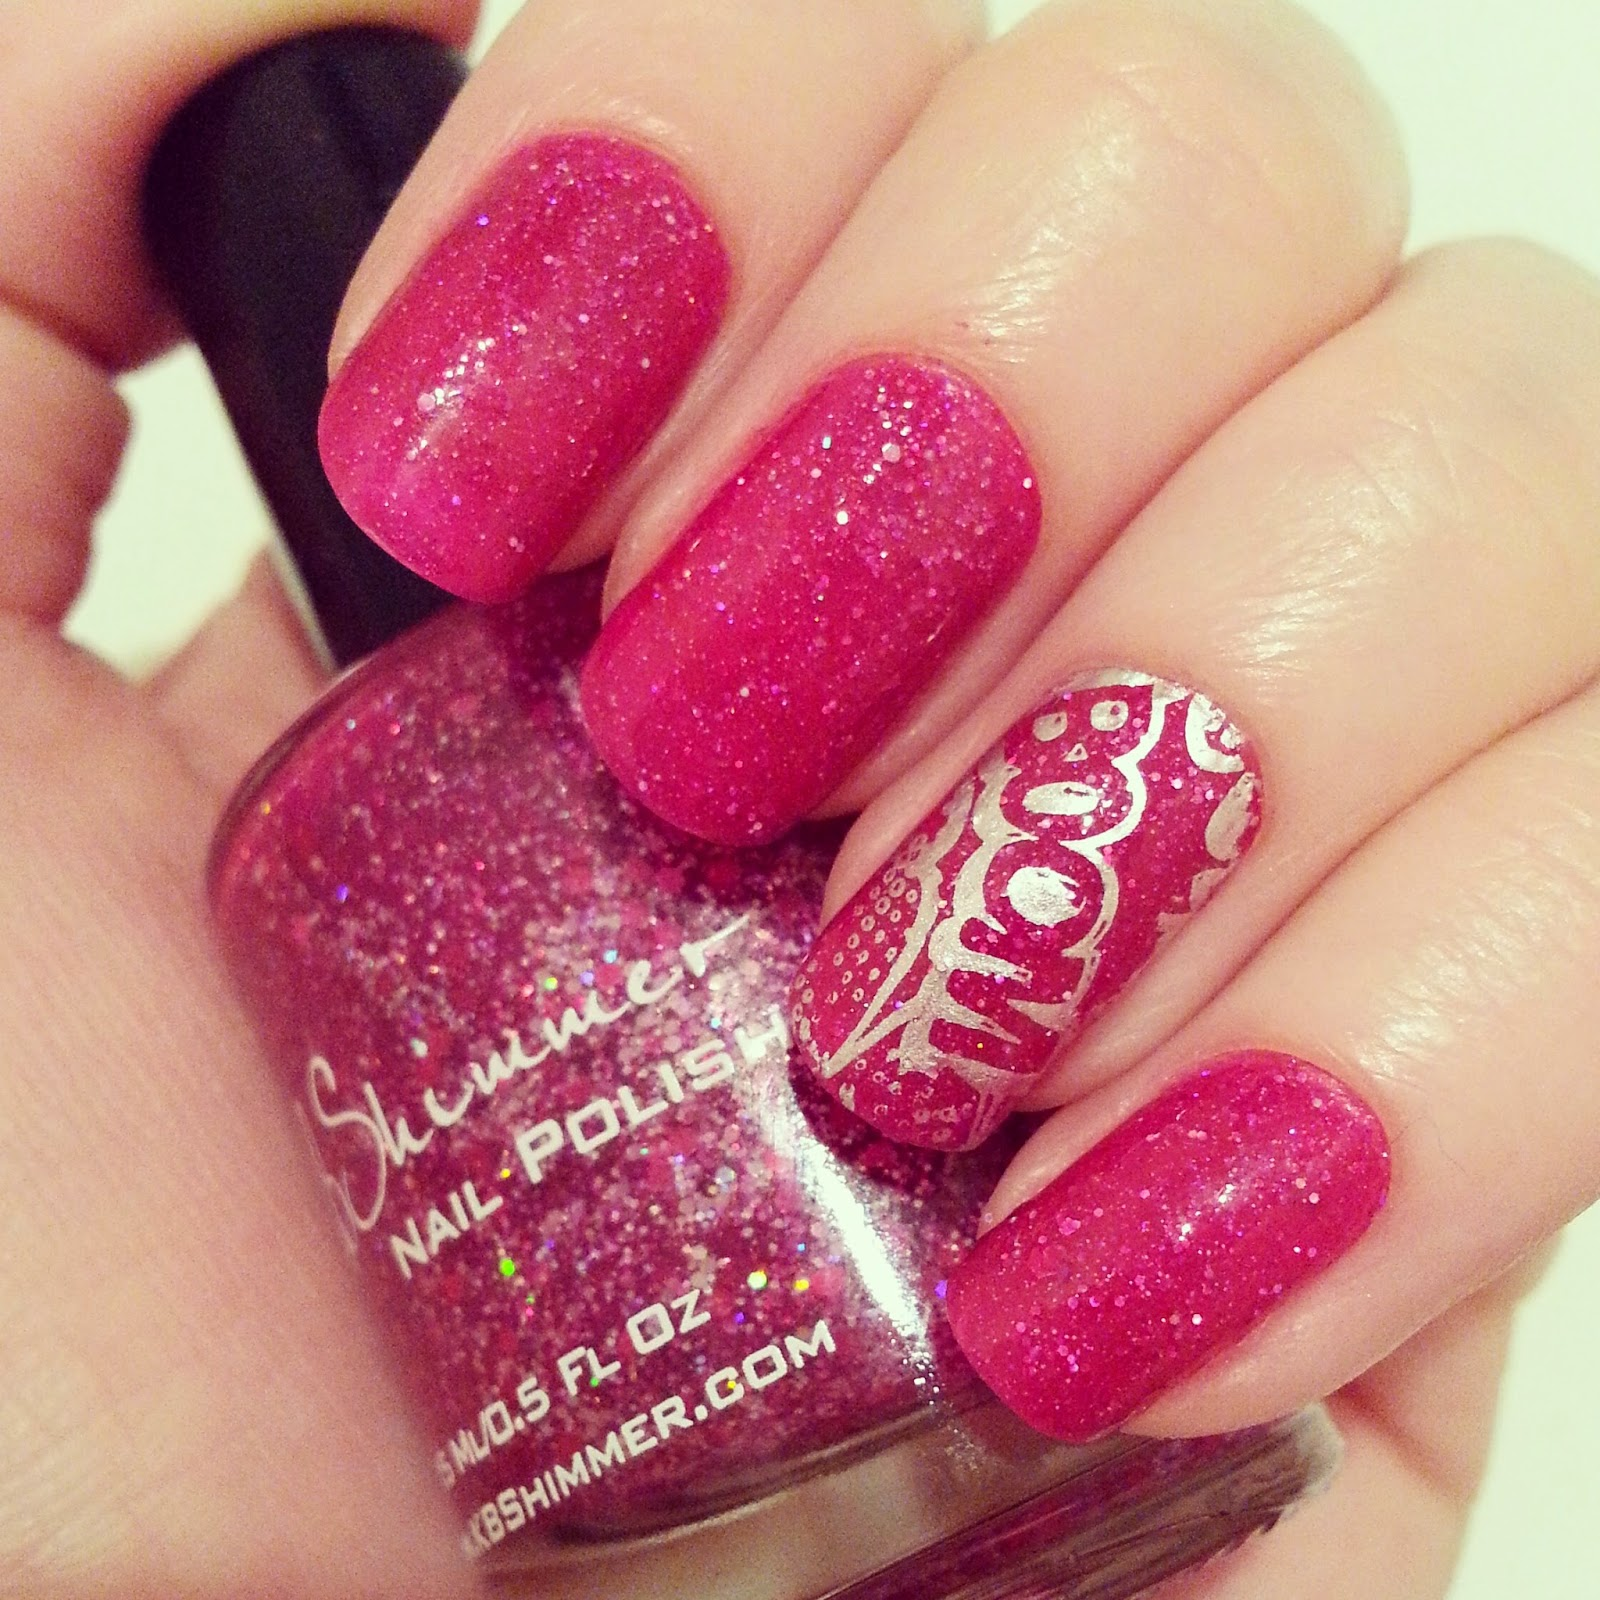 kb-shimmer-razzical-with-accent-nail-art